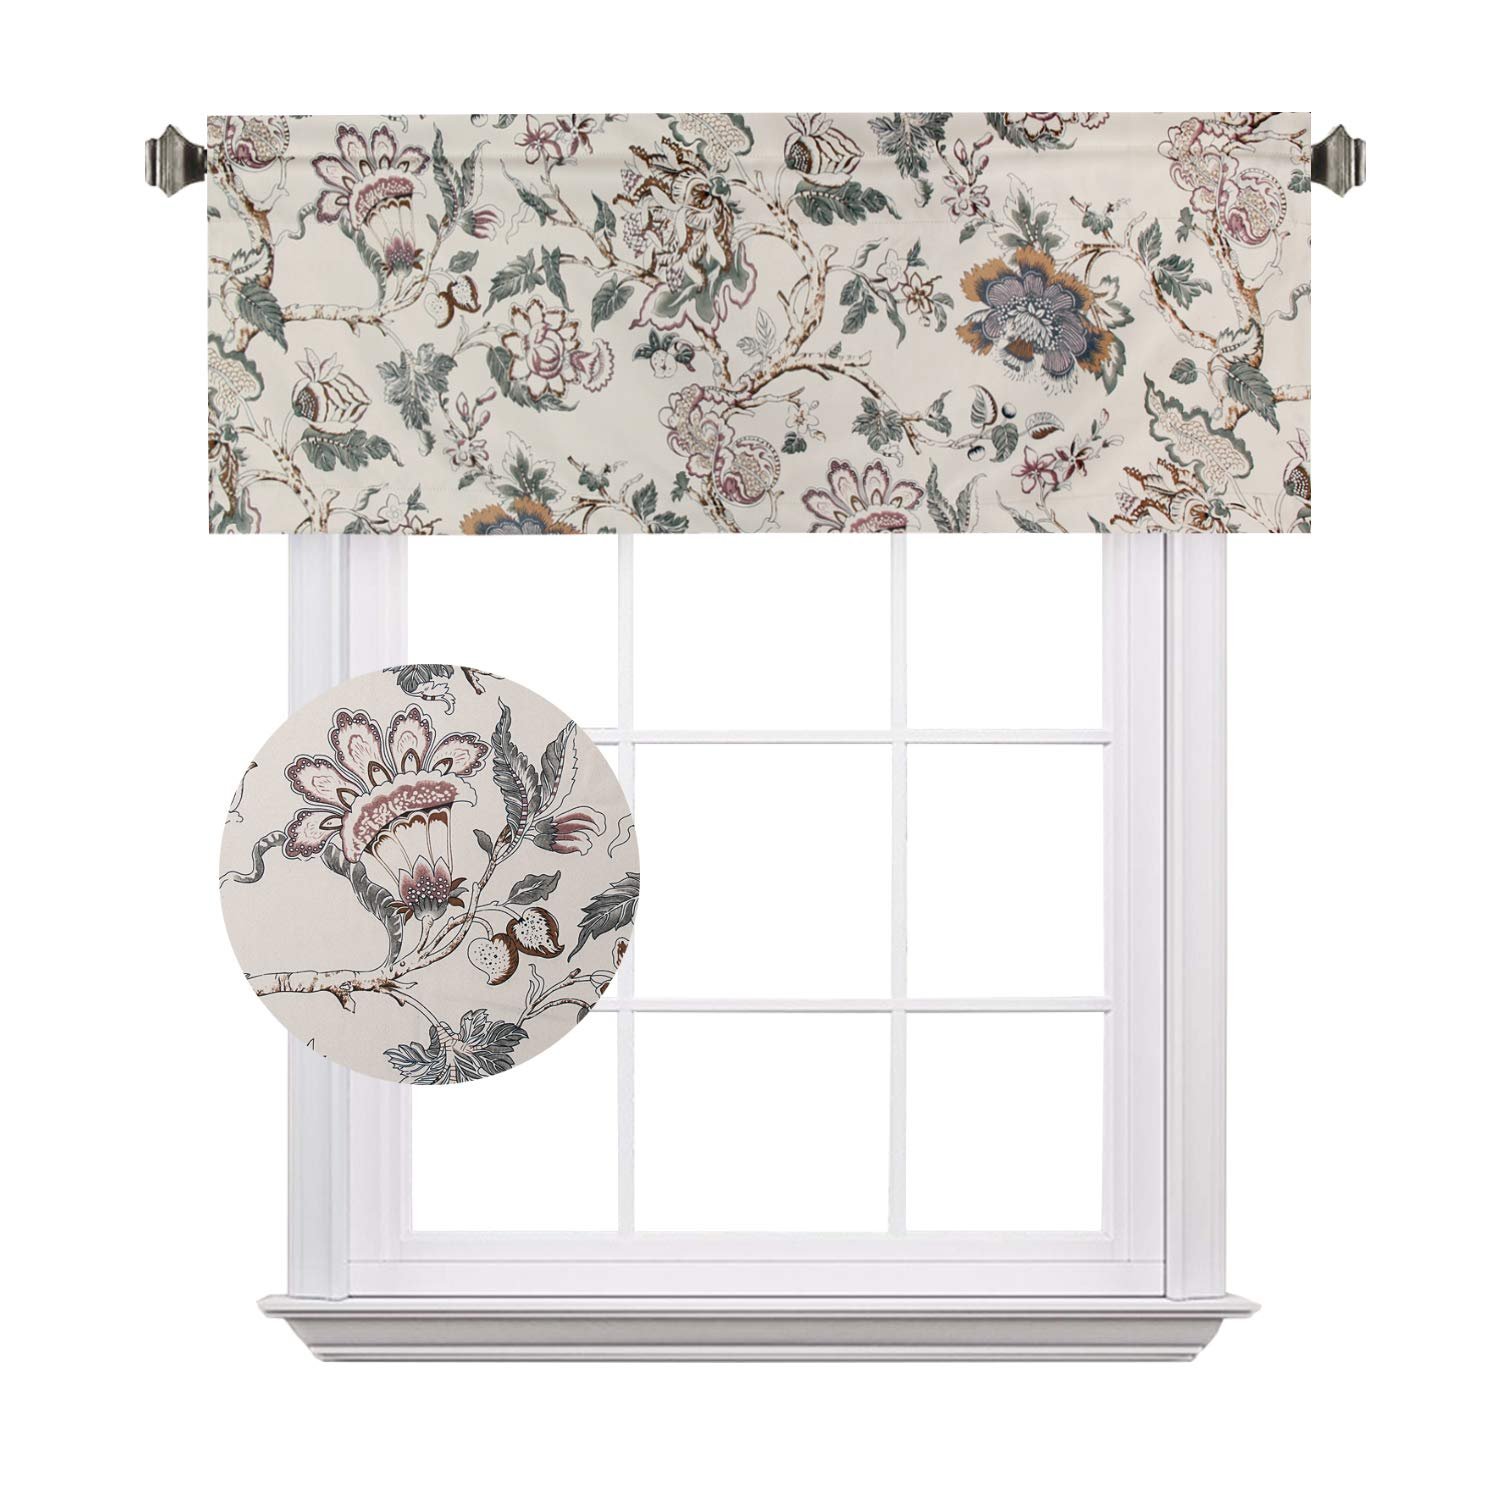 Rod Pocket, 52 by 18 Inch, Flroal in Sage and Brown H.VERSAILTEX Energy Saving Curtain Valances Matching with Curtain Panels